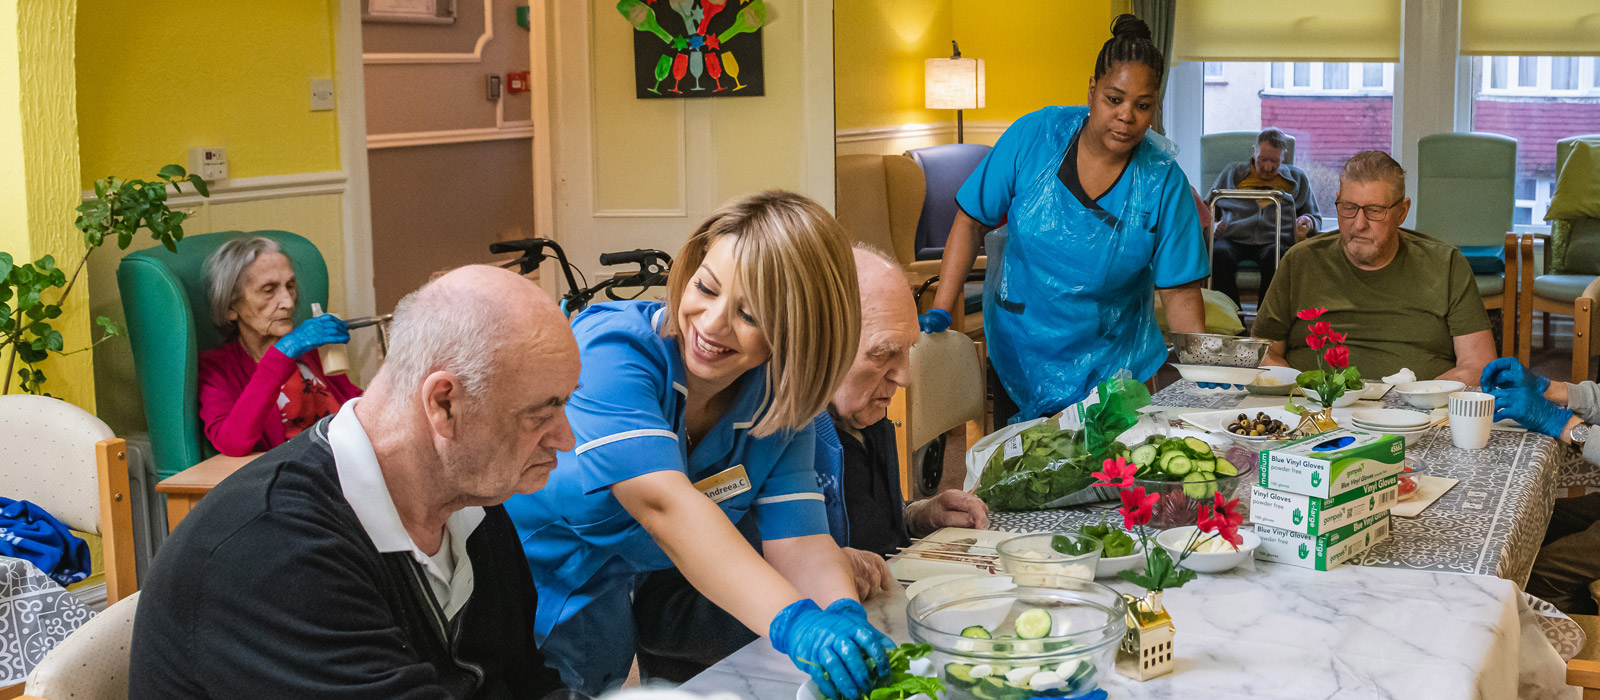 About Grafton Lodge Care Home, its owners and staff